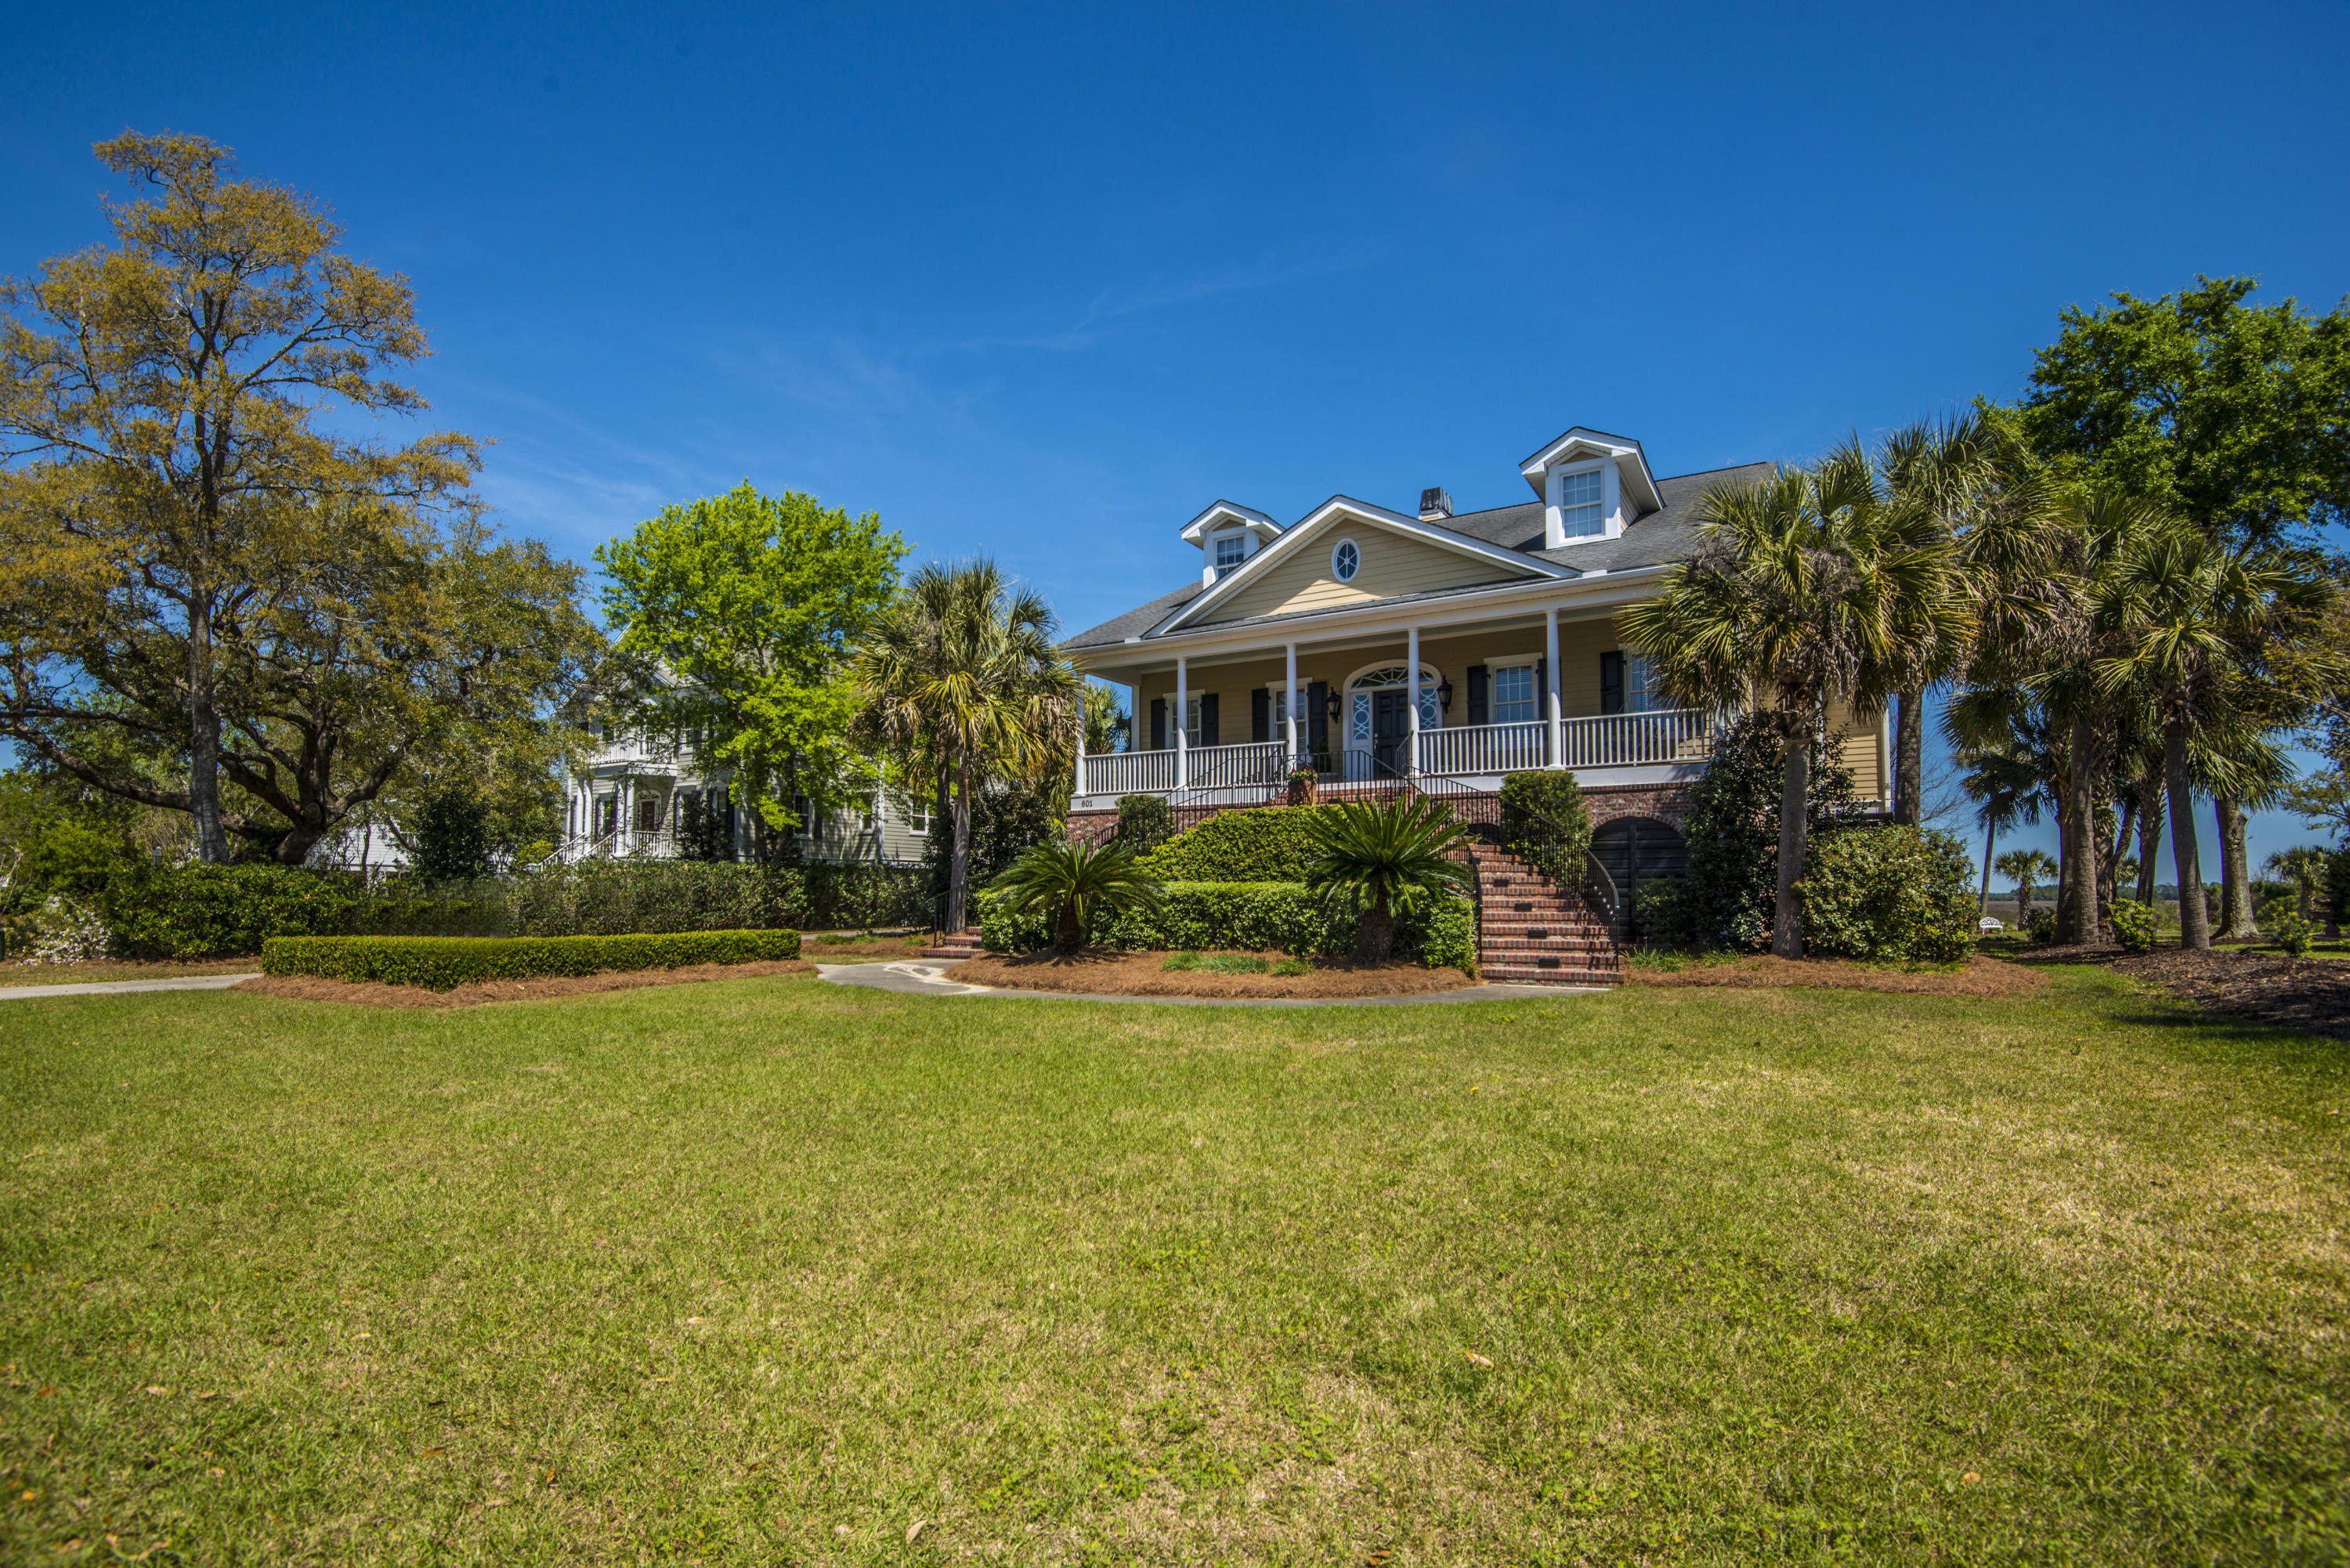 Belle Hall Homes For Sale - 601 Island Walk East, Mount Pleasant, SC - 30